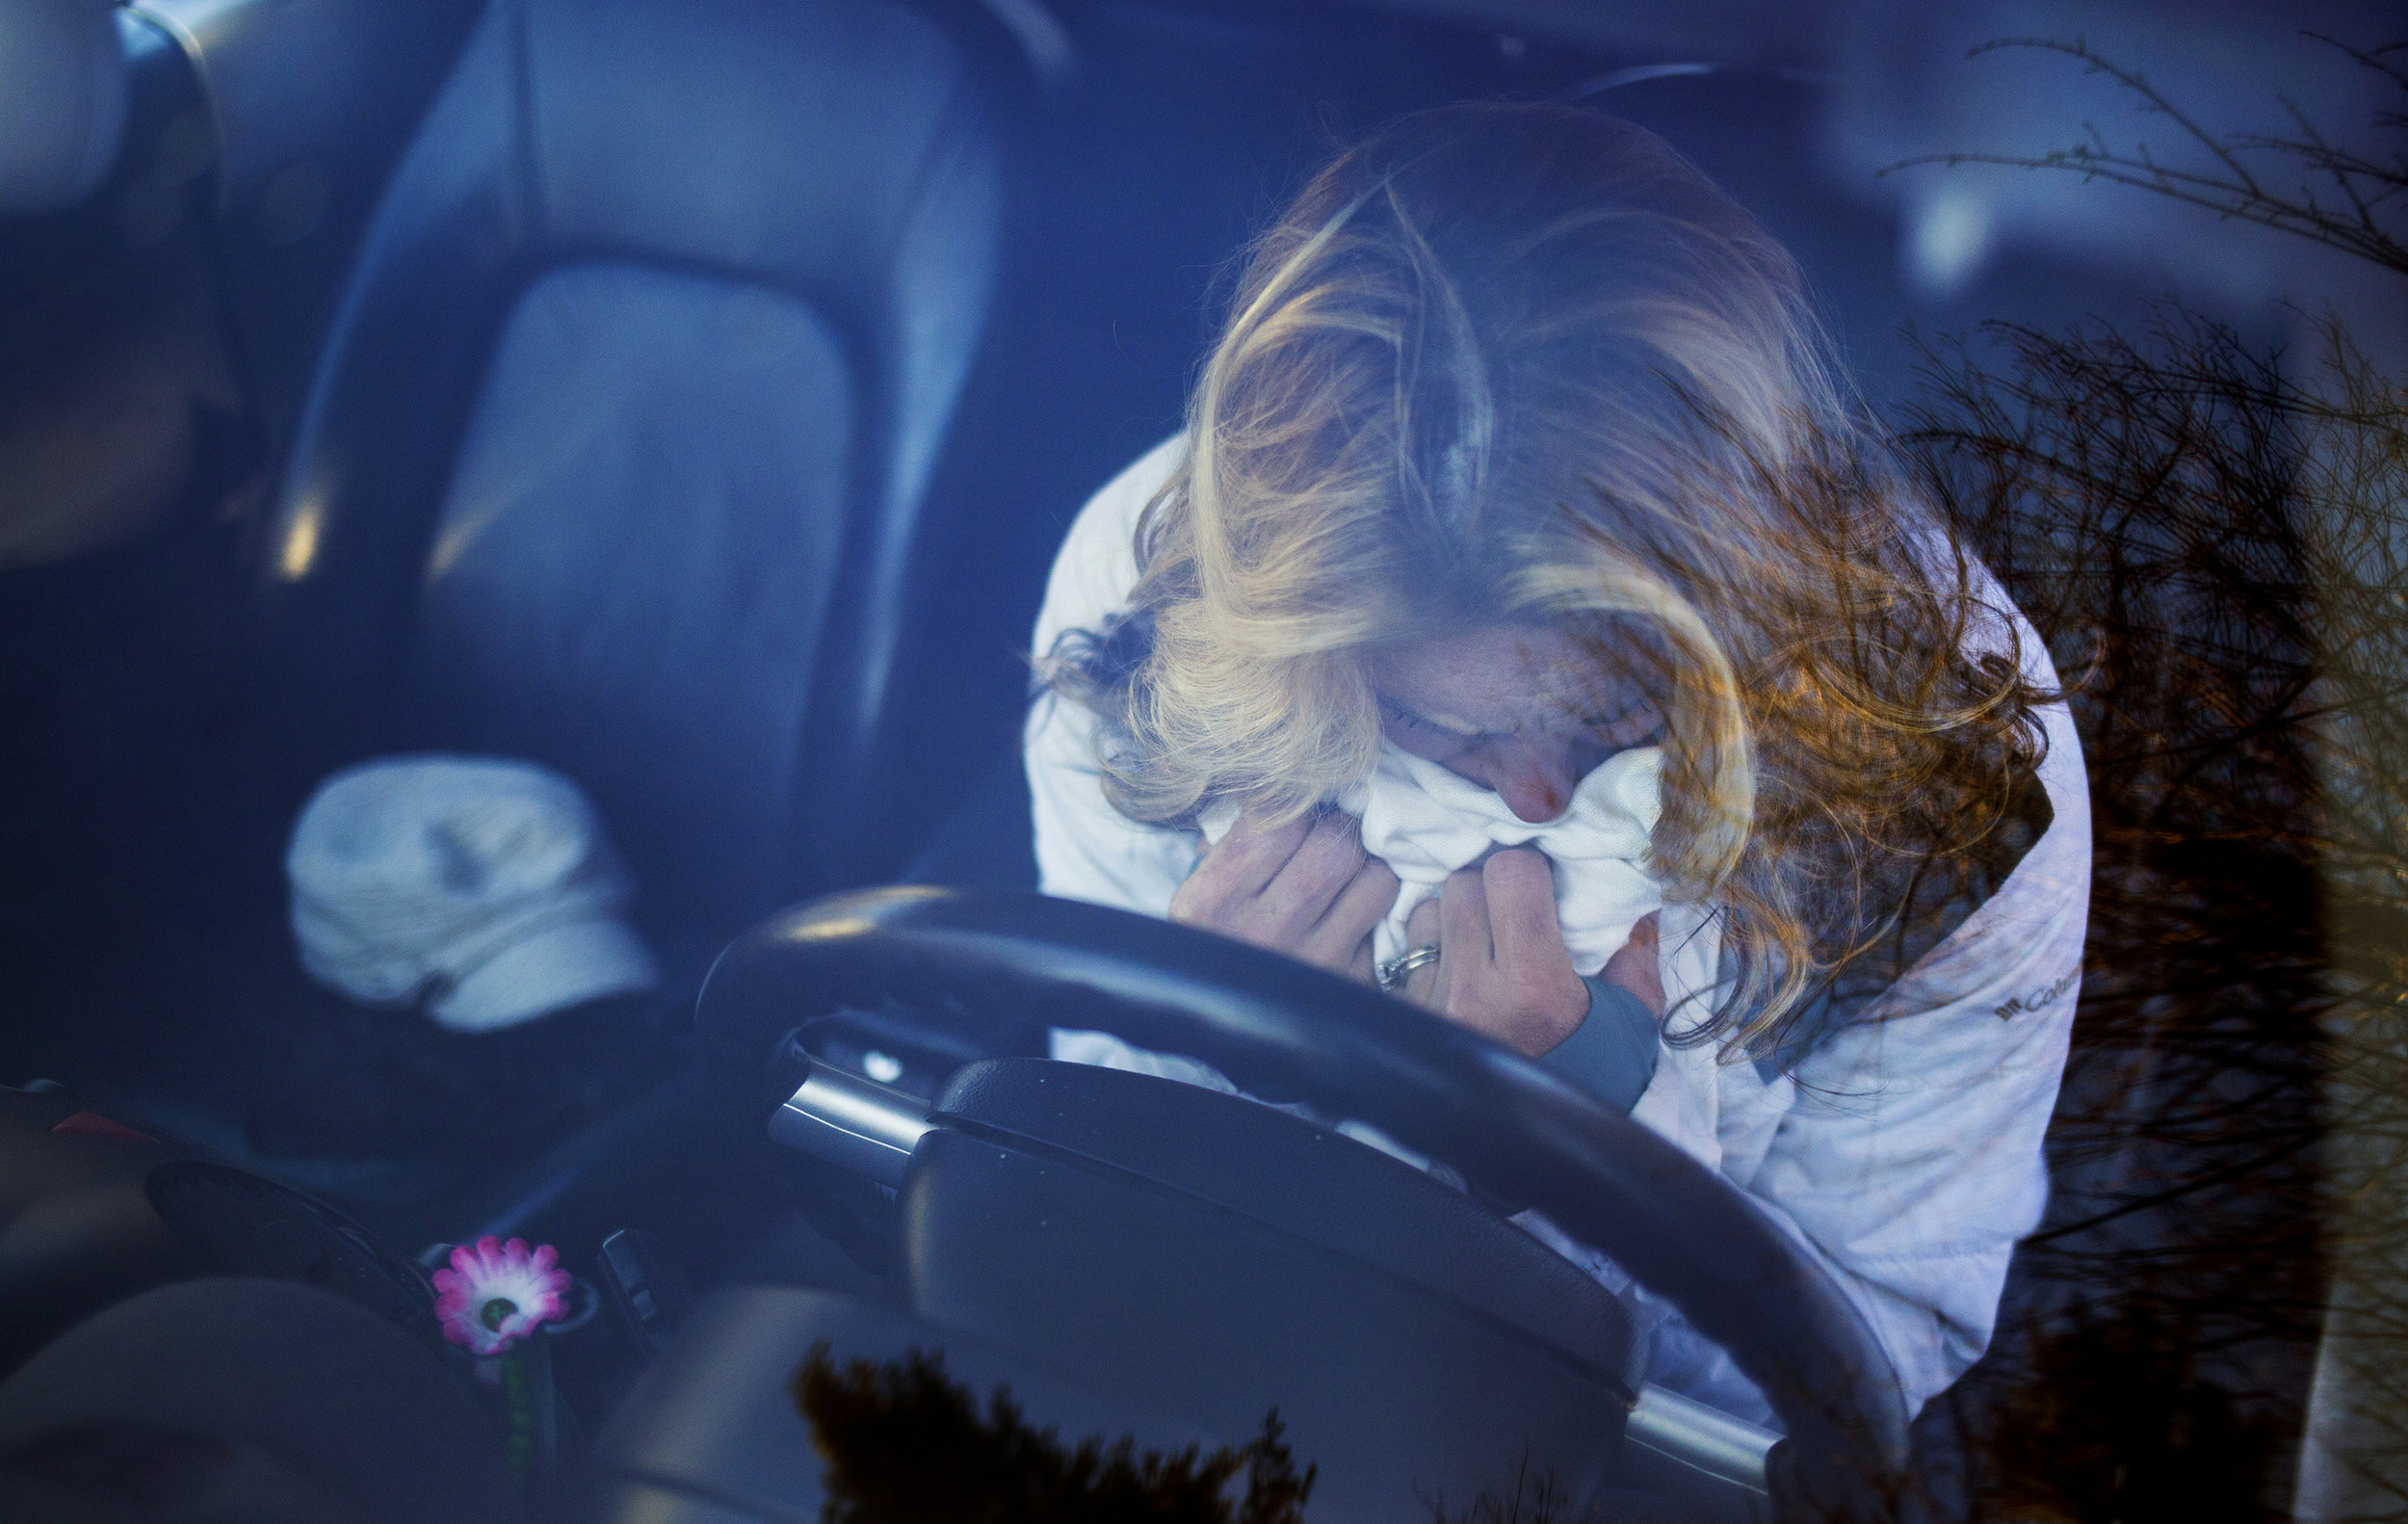 Ann Howgate buries her face in the blanket that the police covered her daughter's body up with when the discovered her dead in her car from an overdose. Kristina Emard died on Sept. 25, 2016. She was 28 years old.